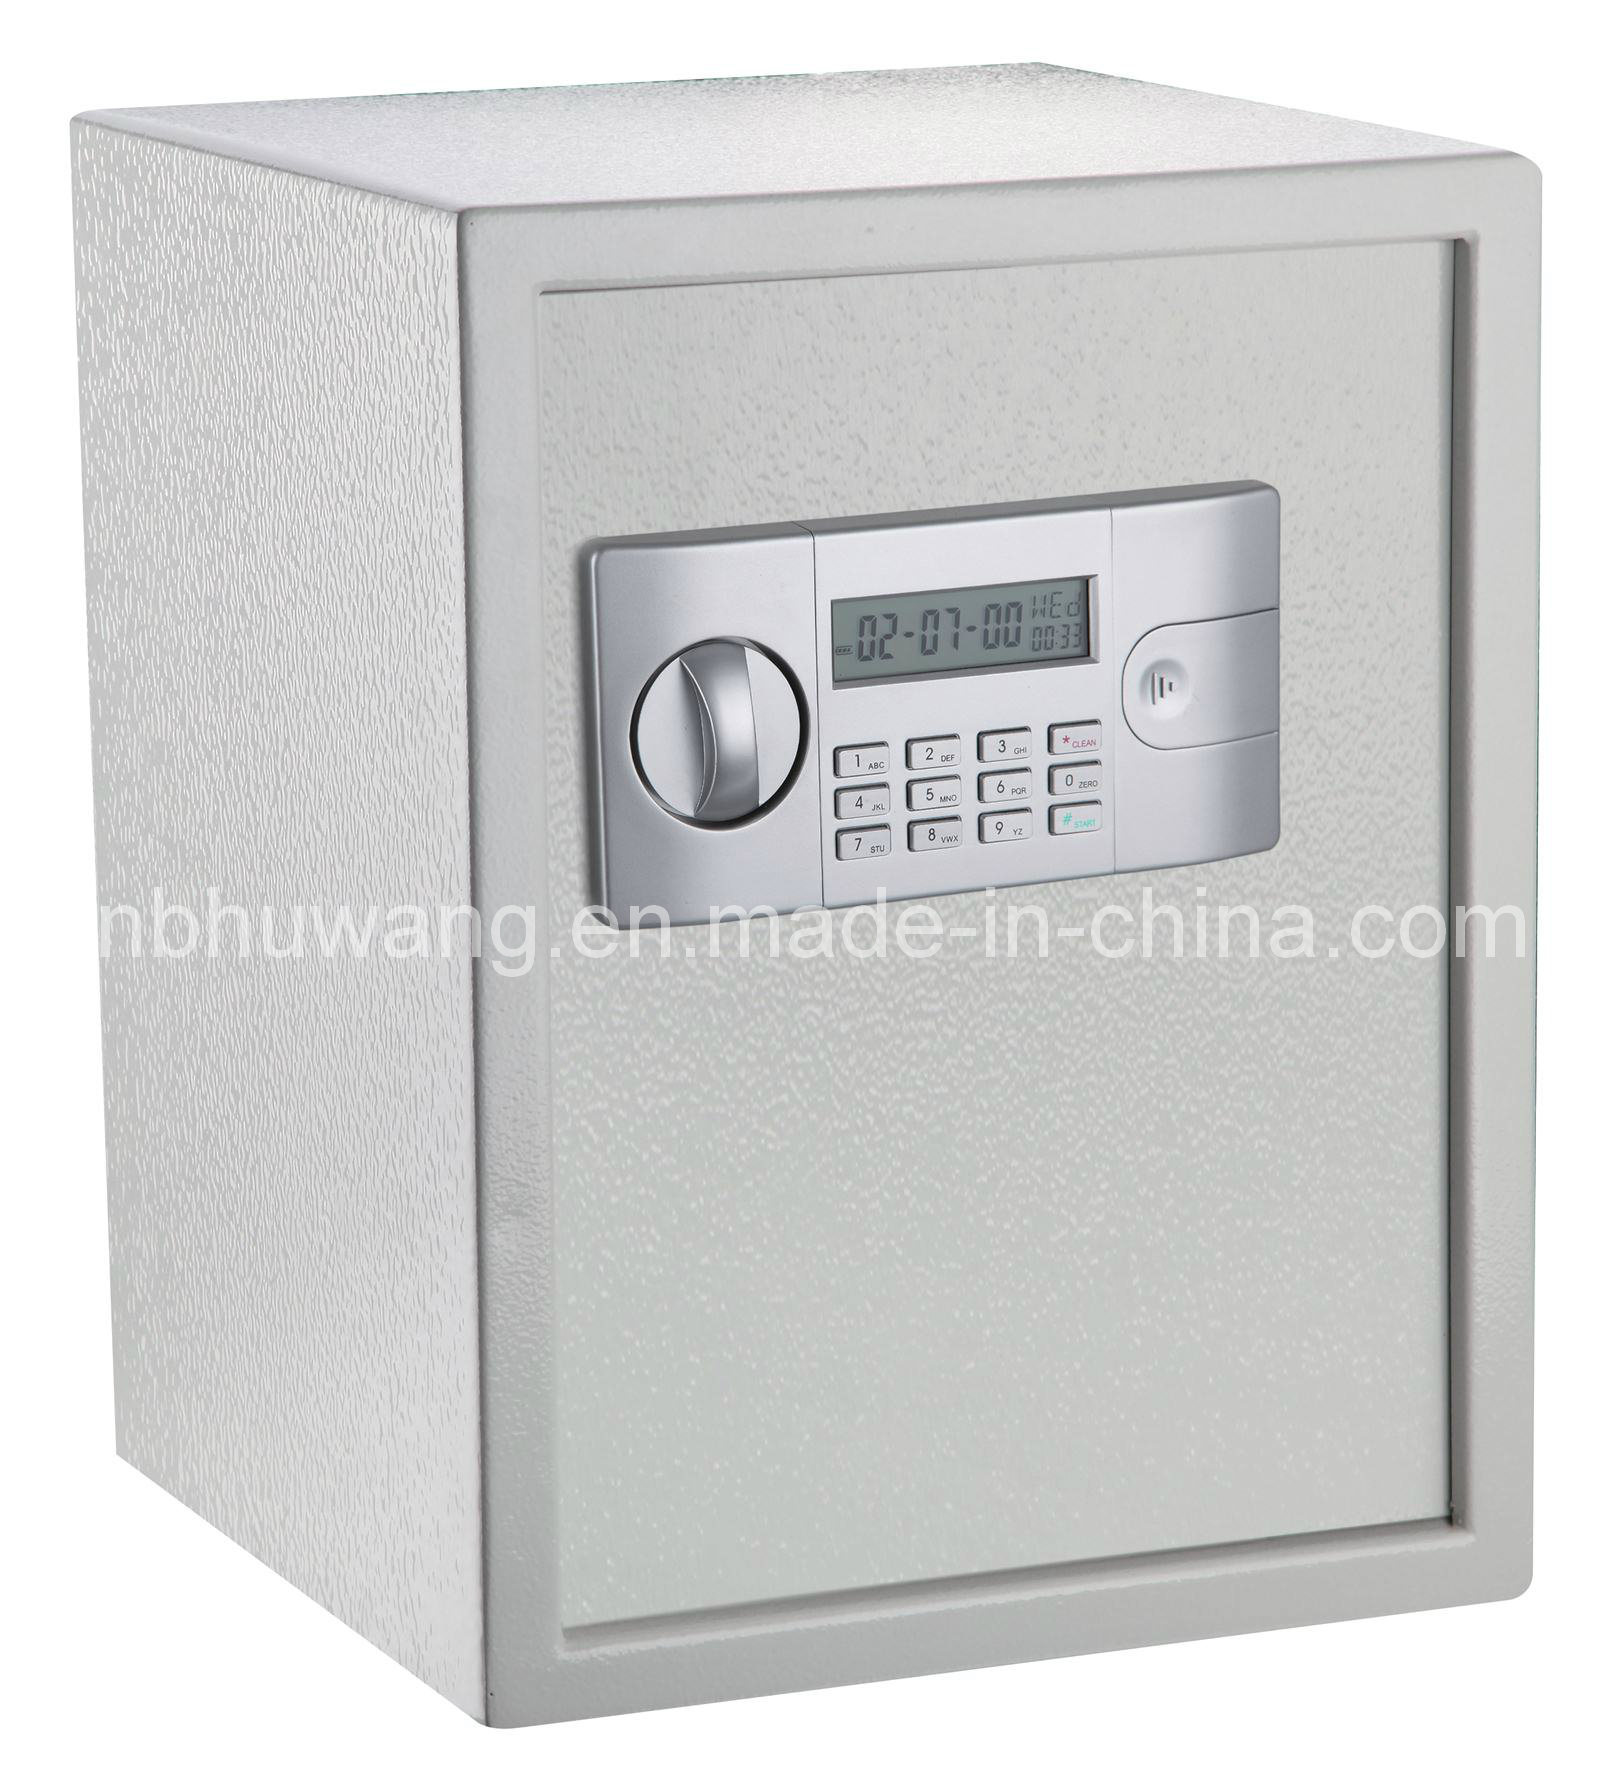 Electronic Safe for Home and Bussiness Use